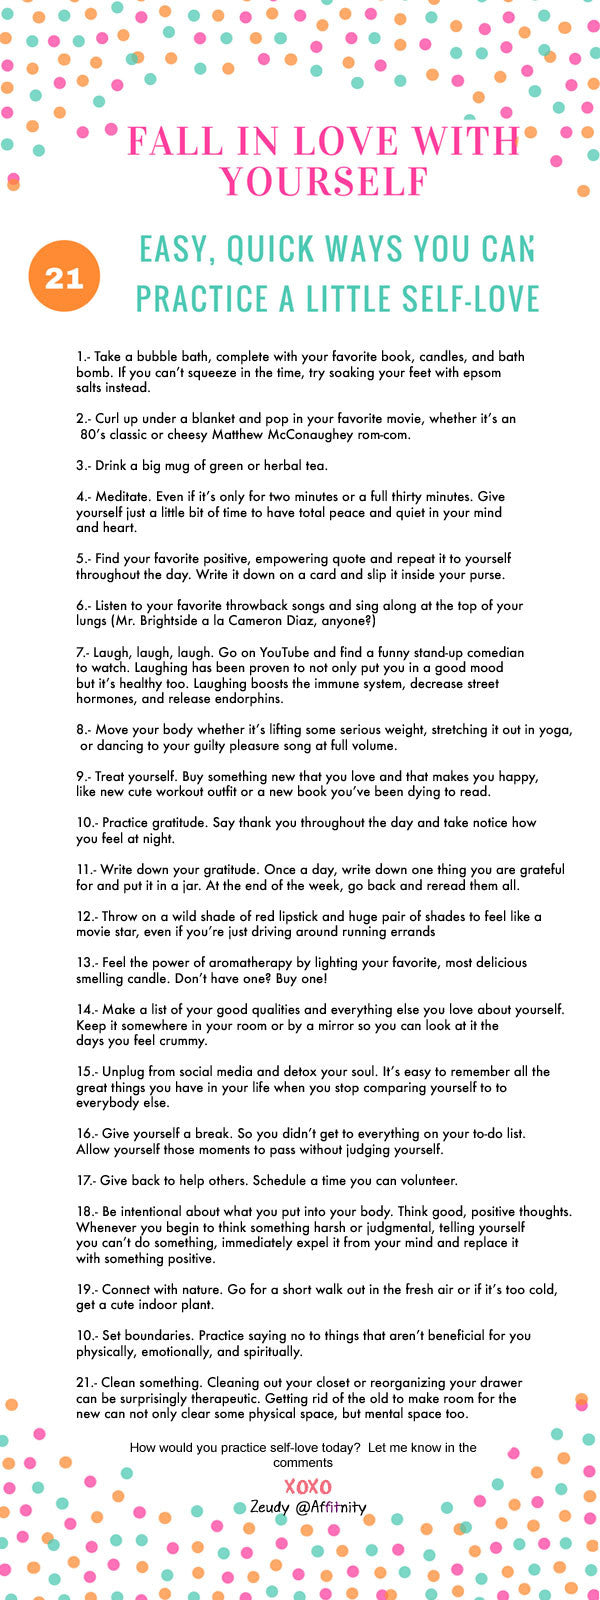 fall in love yourself self love 21 ways to practice self love